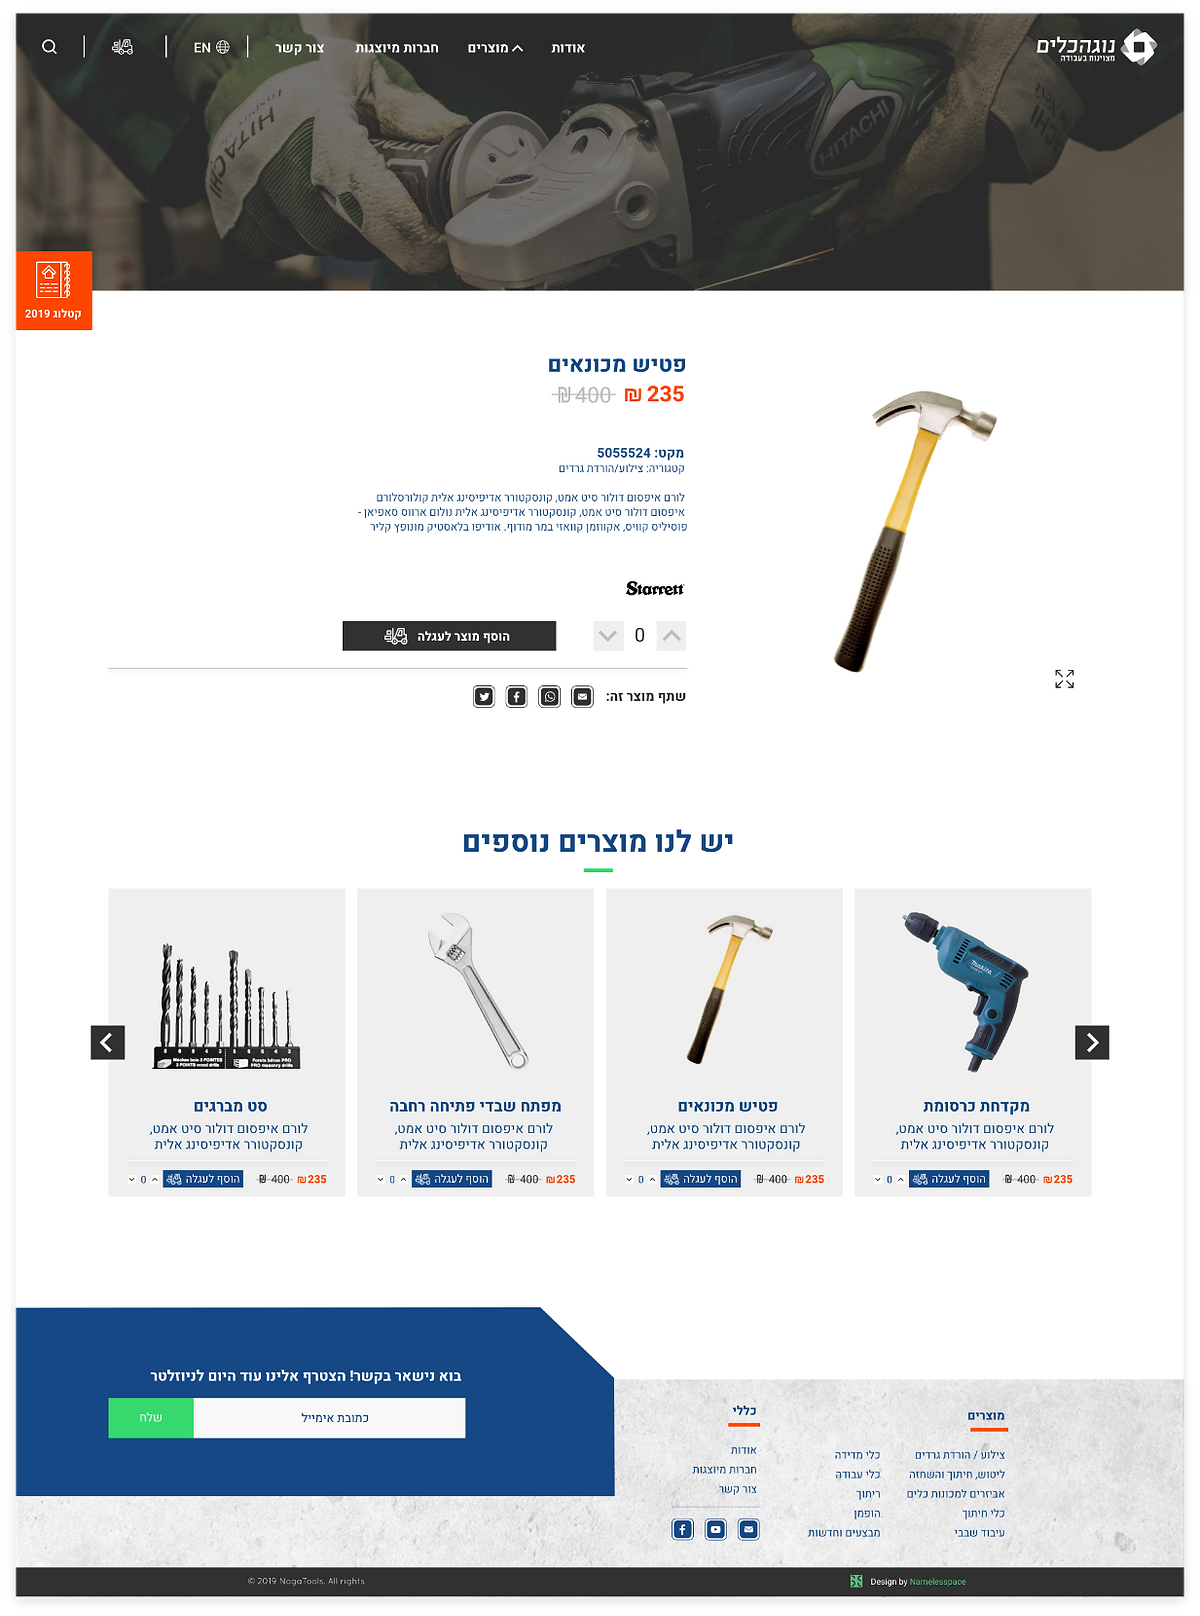 Purchase_Product_page.png